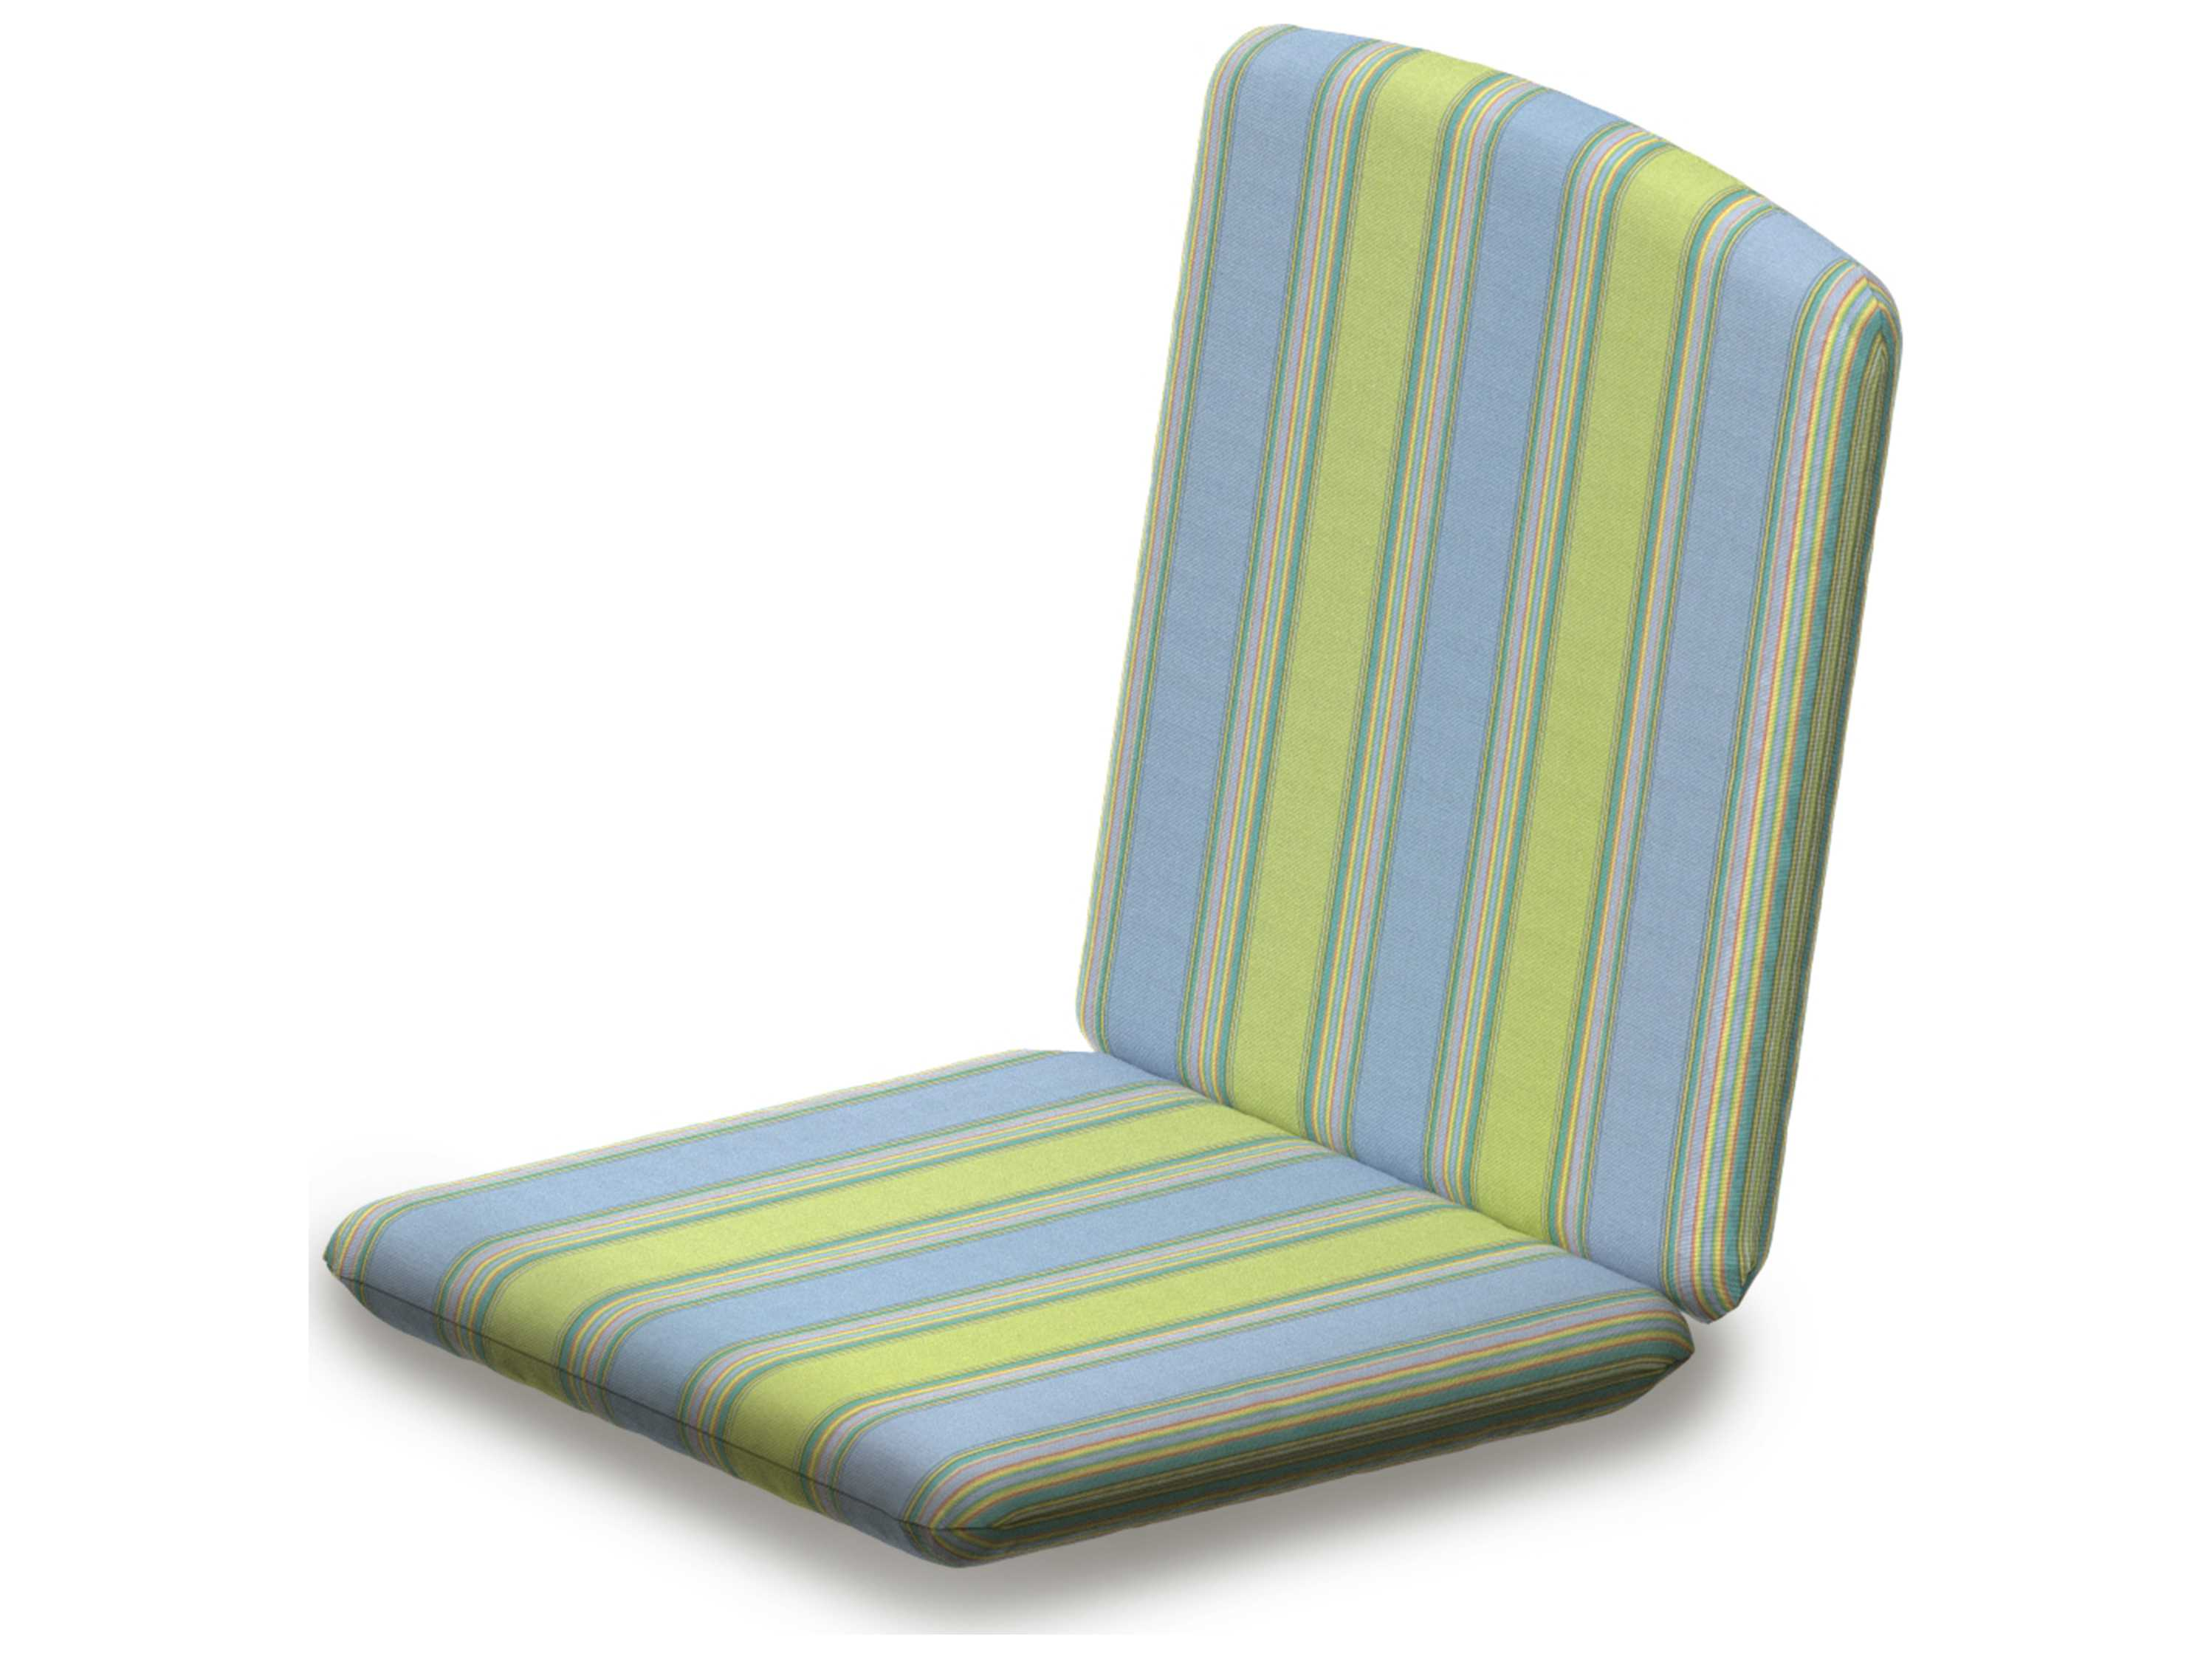 Polywood 174 Nautical Replacement Chair Seat Amp Back Cushion